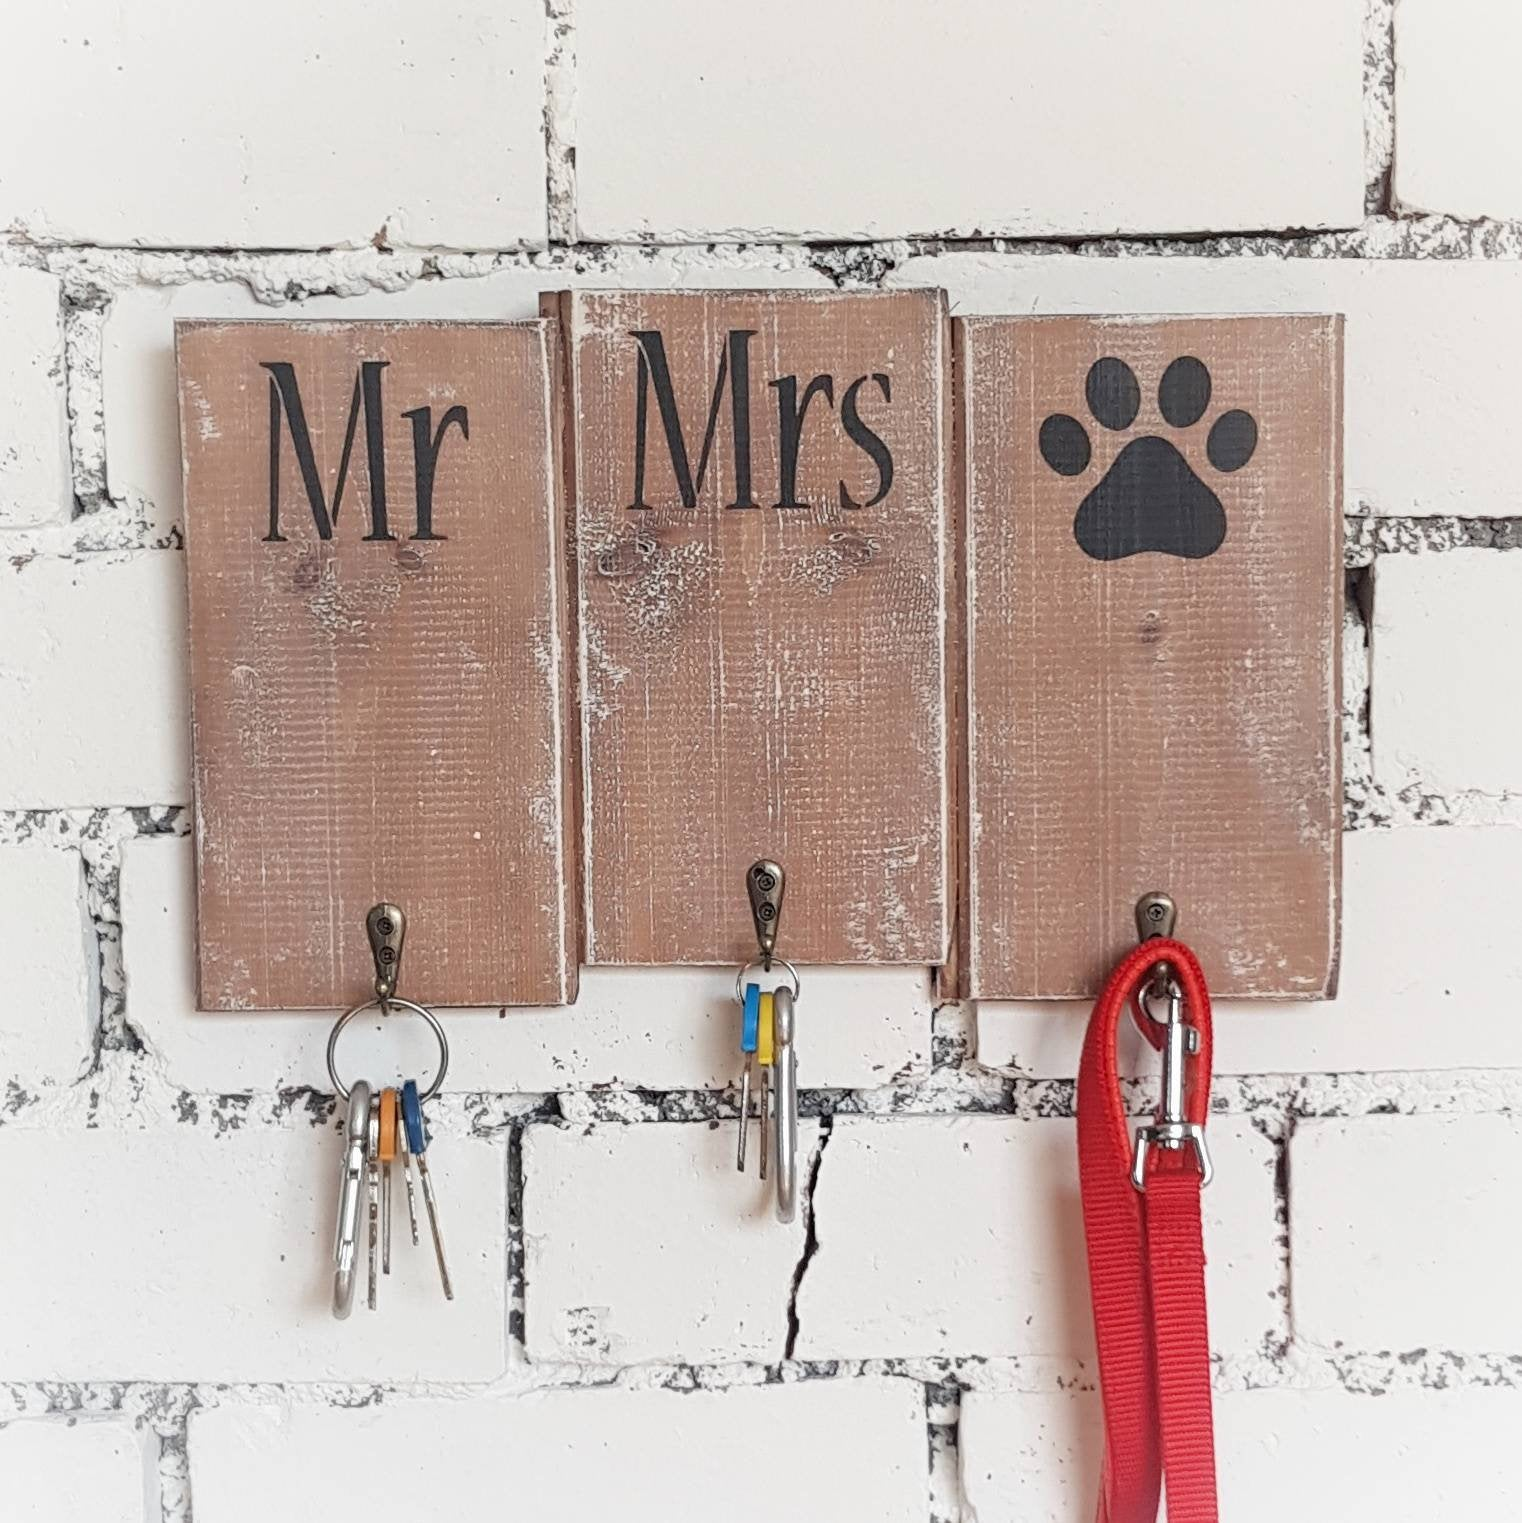 Mr Mrs wall key holder - Caramel Treasures